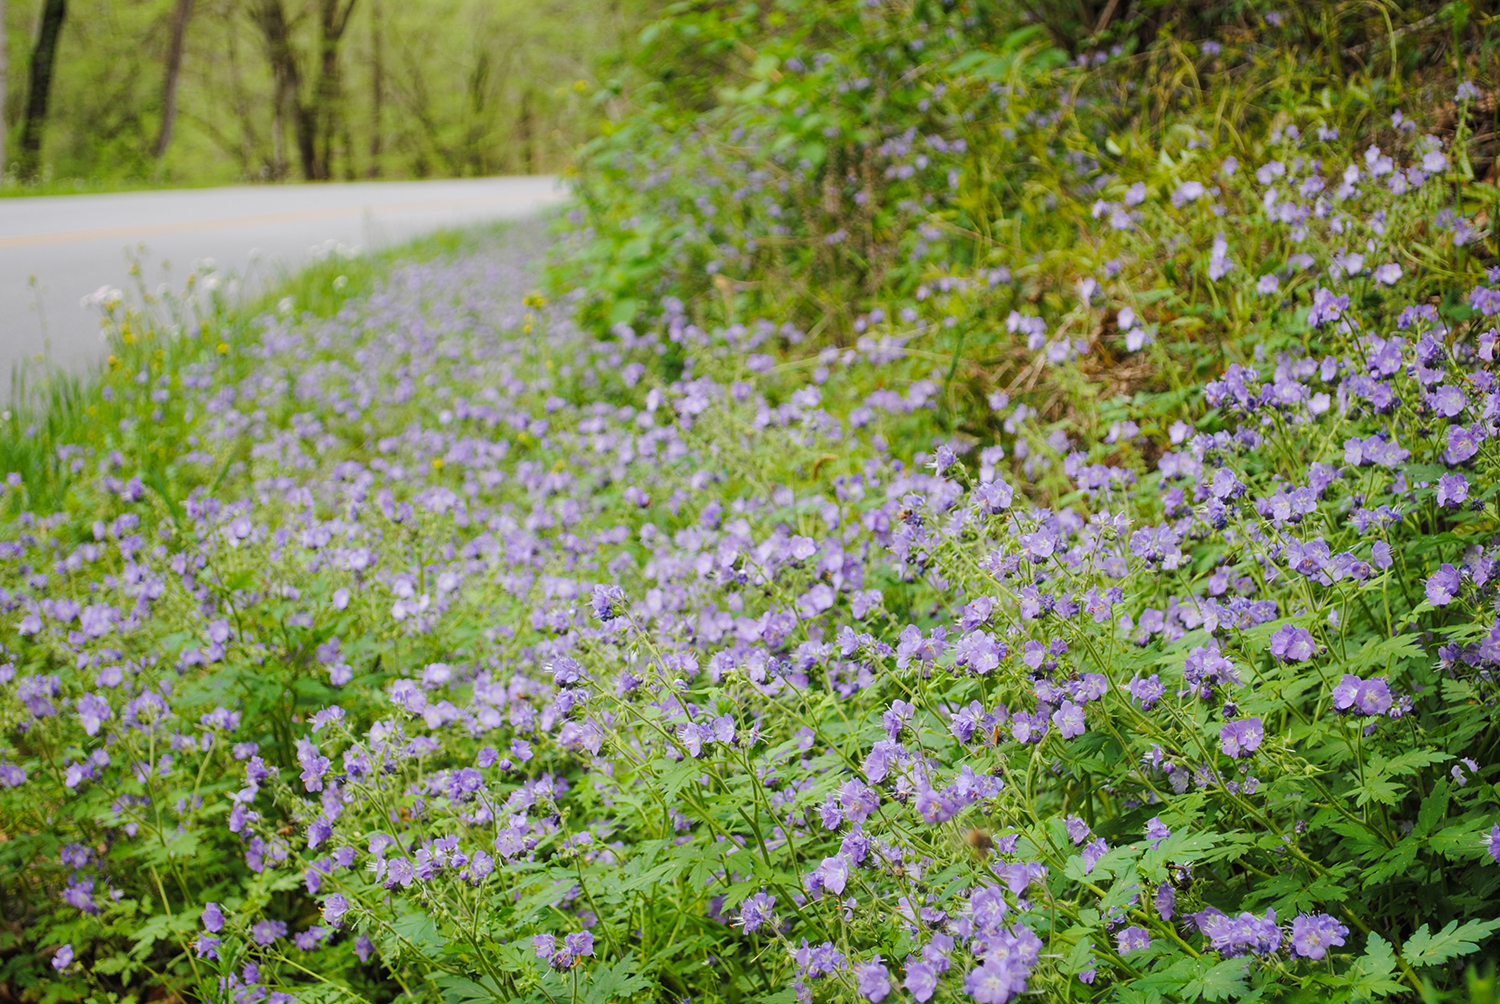 Phacelia bipinnatifida  (purple phacelia)form a river of lilac on the roadsides in the Smokies. If you pull over and squat amongst the flowers, you'll sniff hints of celery.